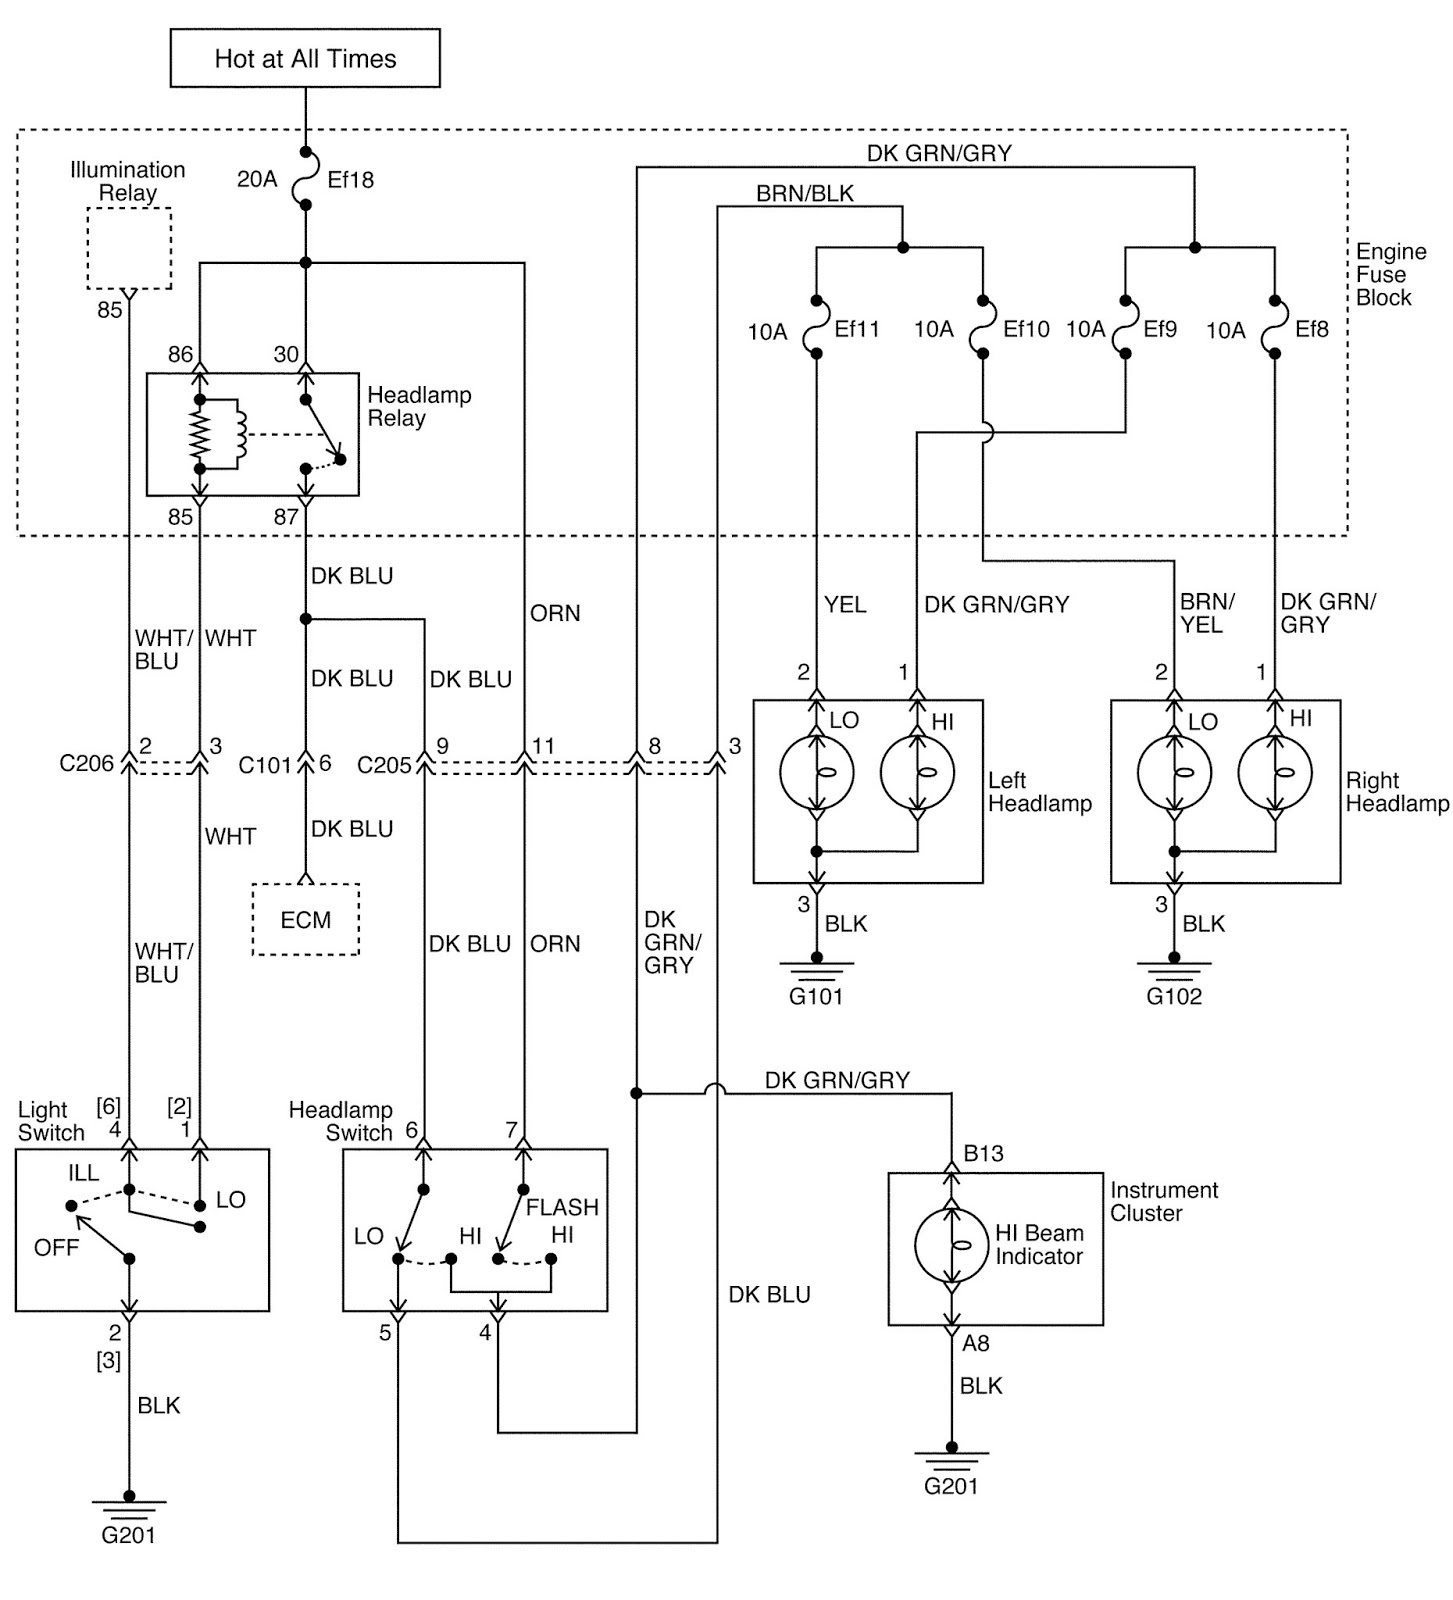 daewoo matiz car lighting systems schematic and routing diagrams rh electronicshelponline blogspot com daewoo matiz circuit diagram daewoo matiz wiring diagram